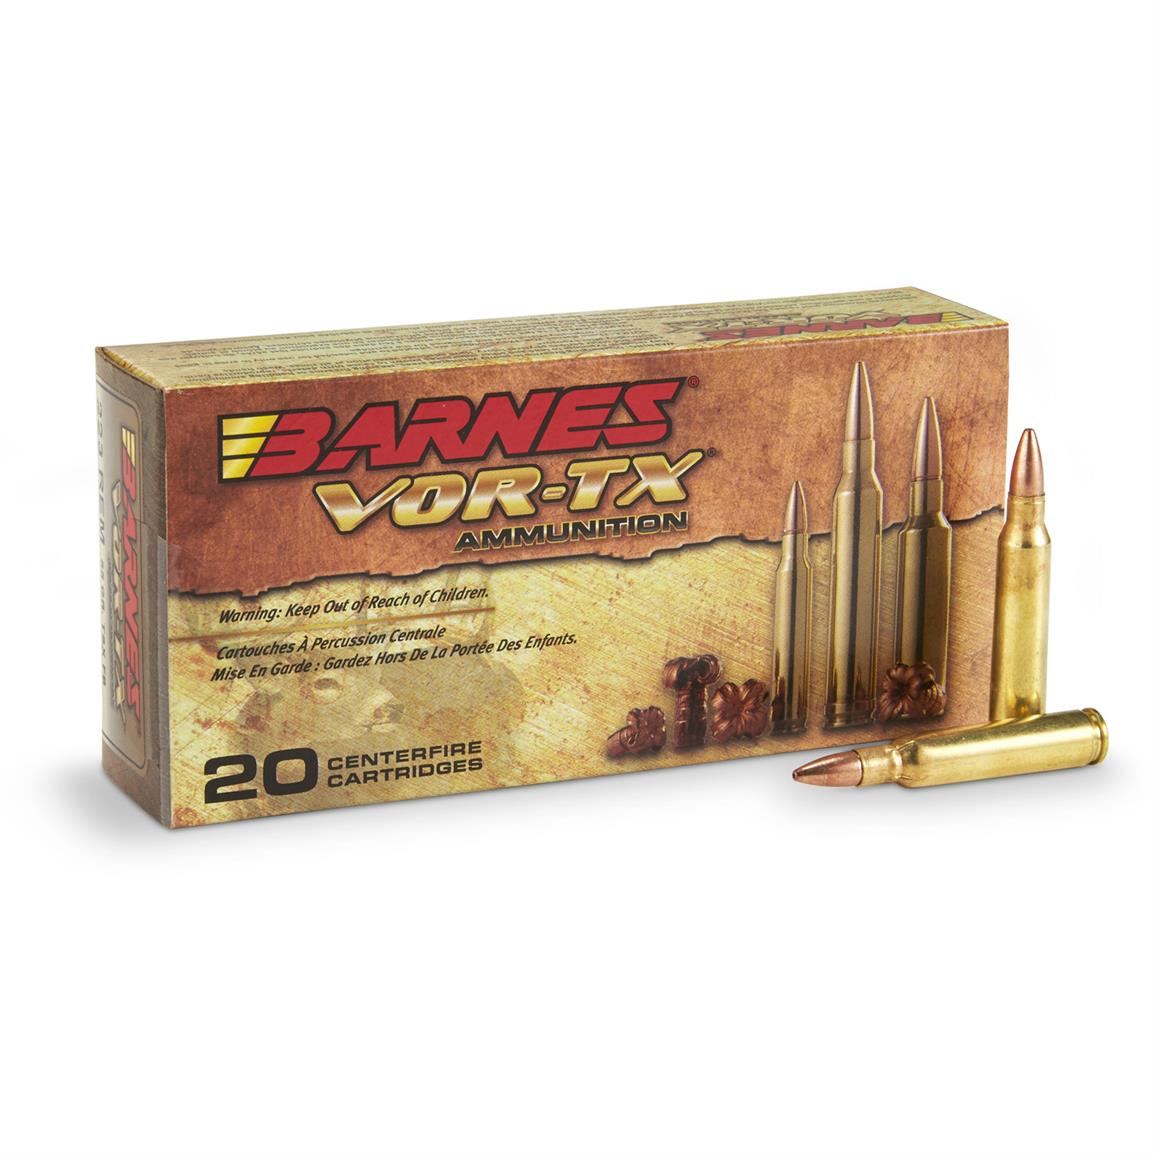 Barnes VOR-TX .223 Remington, TSX Rifle Ammo, 55 Grain, 20 Rounds